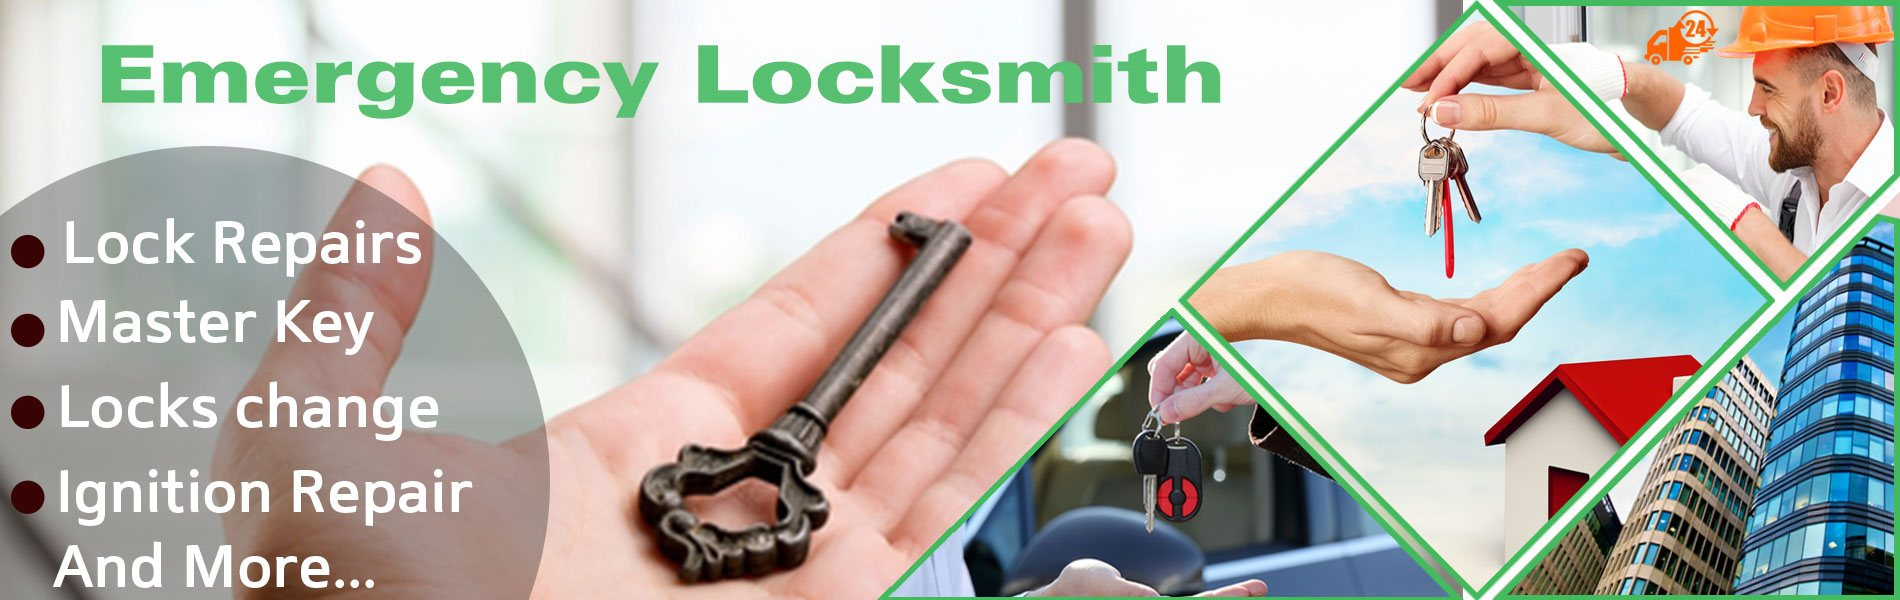 Lock Safe Services Port Saint Lucie, FL 772-247-1053